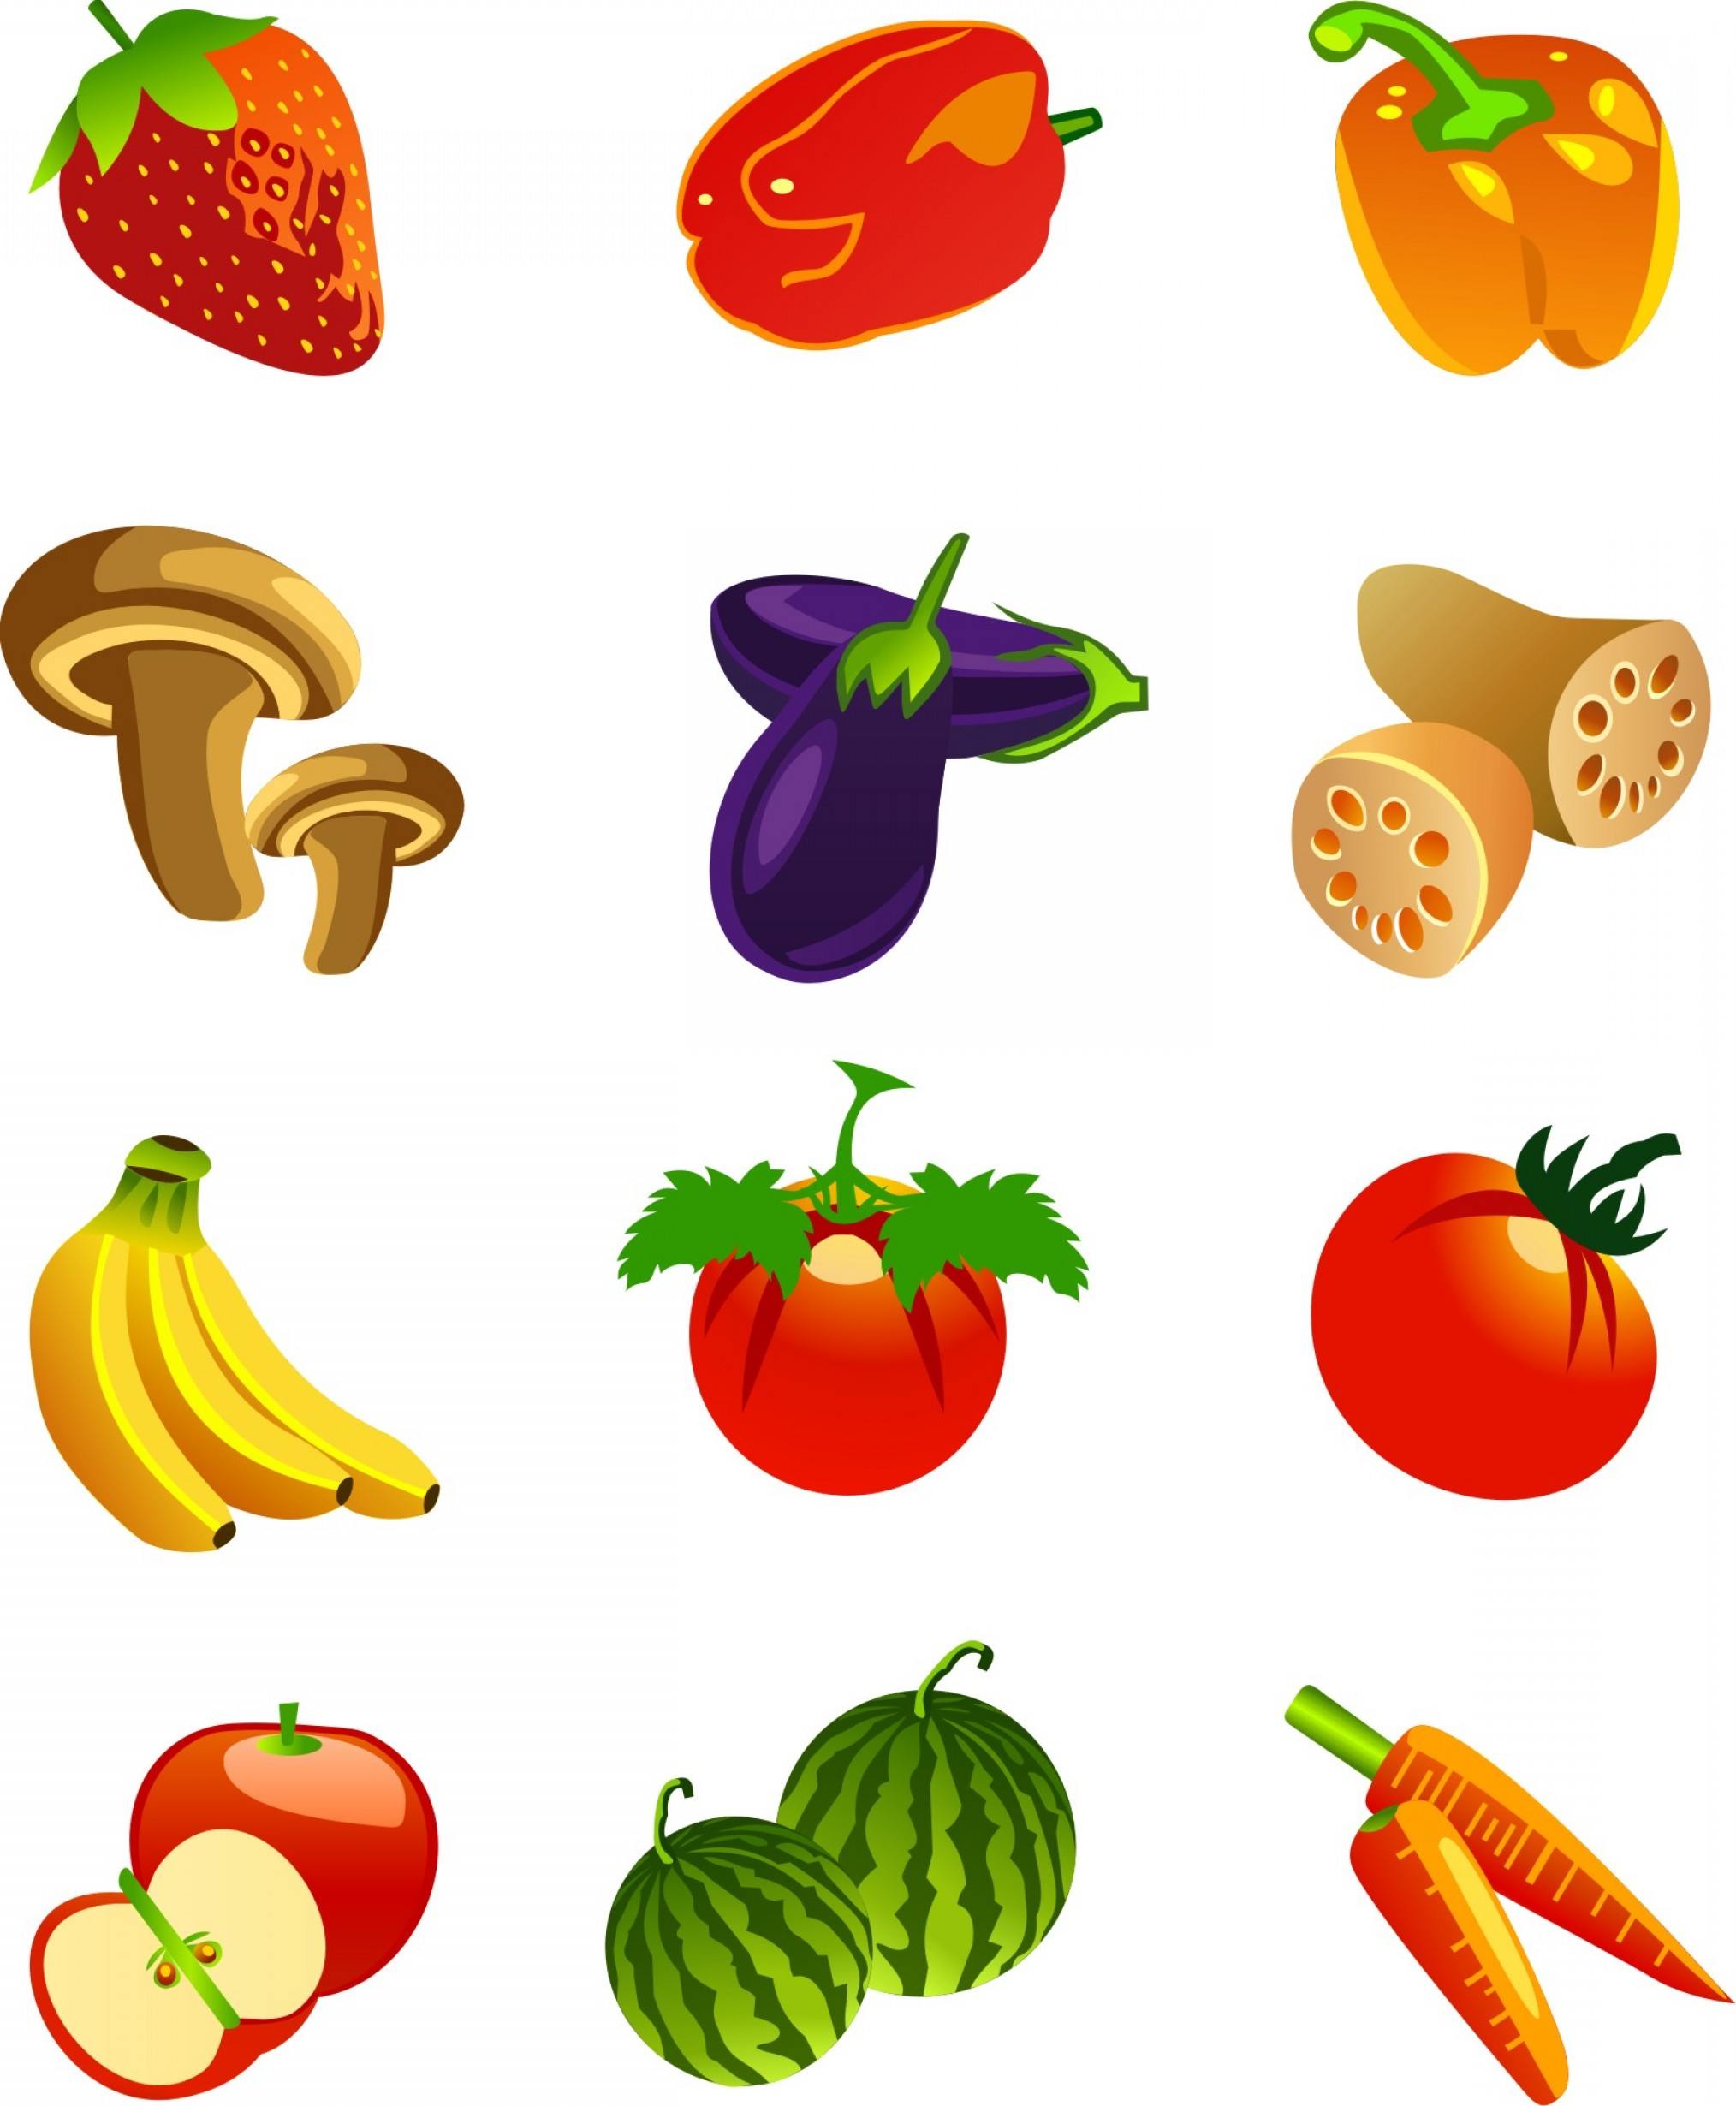 Icon Of Flower Vectors: Fruits And Vegetables Motor Flower Icon Vector